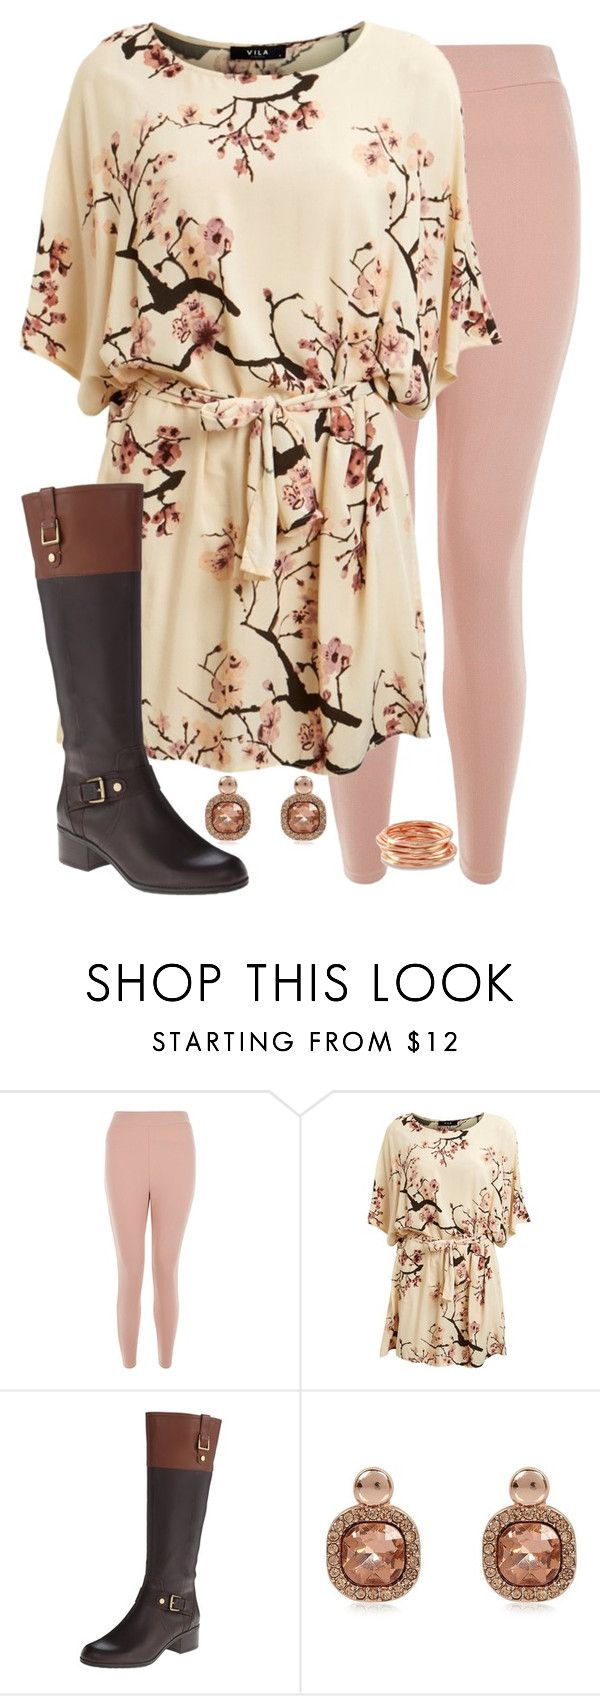 """Teacher Outfits on a Teacher's Budget 179"" by allij28 ❤ liked on Polyvore featuring New Look, Lipsy, Bandolino and River Island"